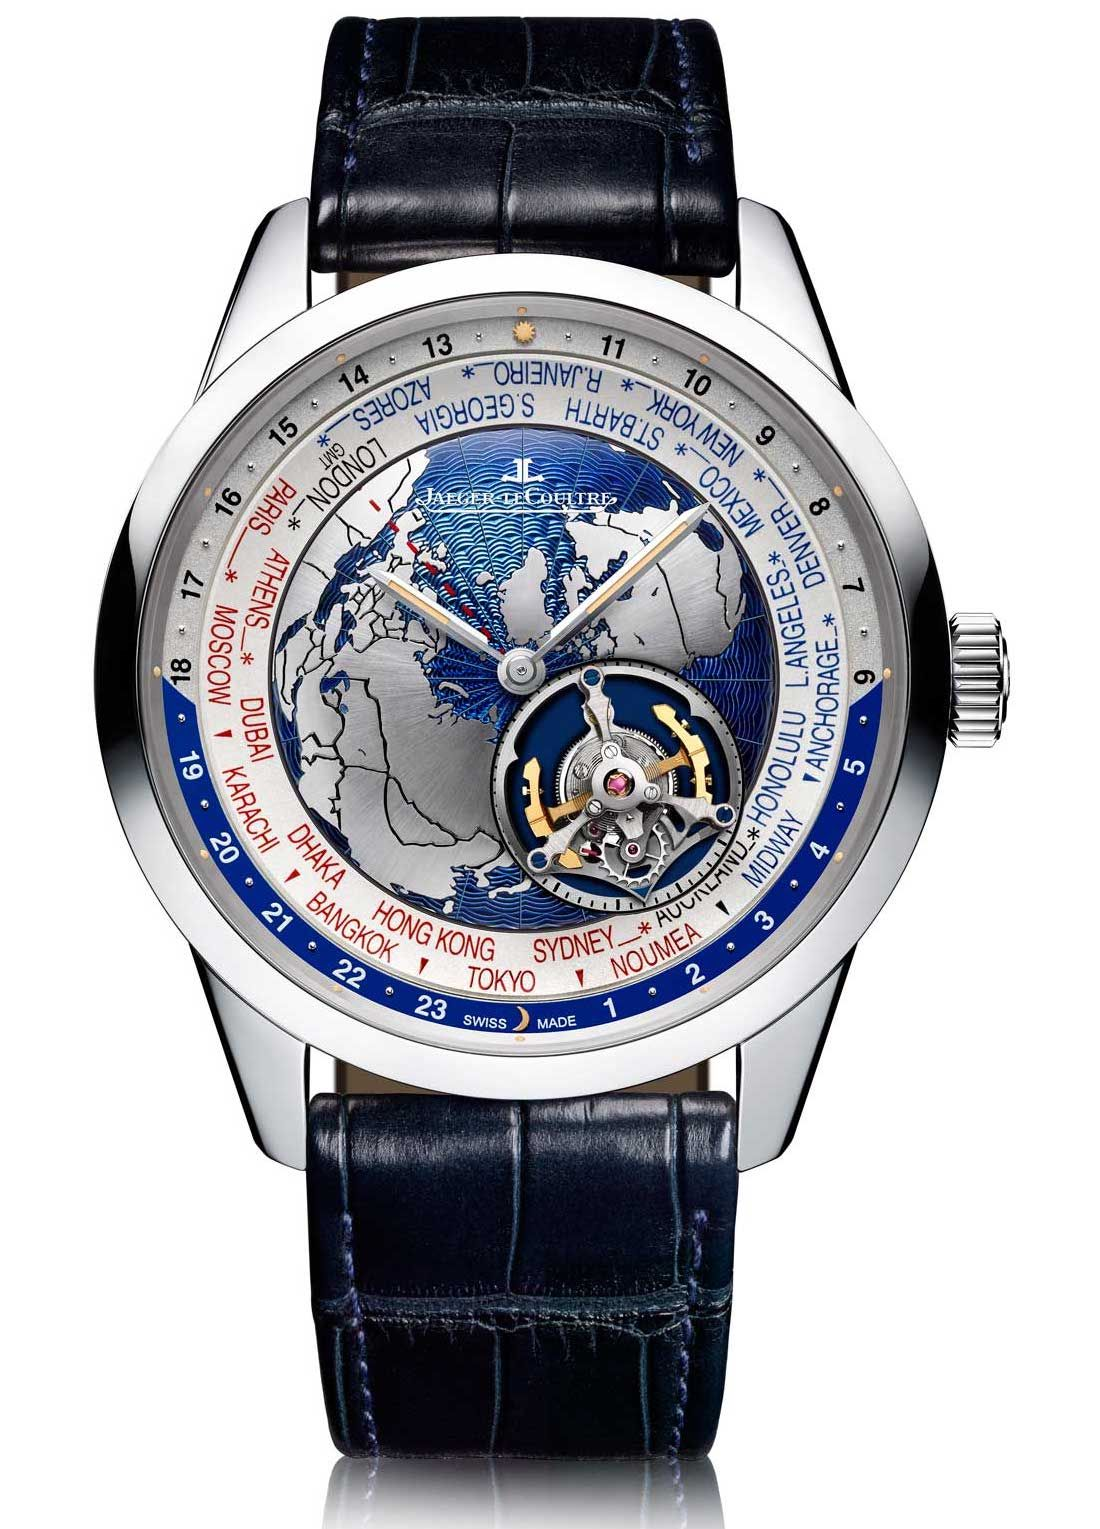 0fed8c0e86b On the site now  Jaeger-LeCoultre Geophysic Tourbillon Universal Time Watch  - by David Bredan - More on this tourbillon at aBlogtoWatch.com